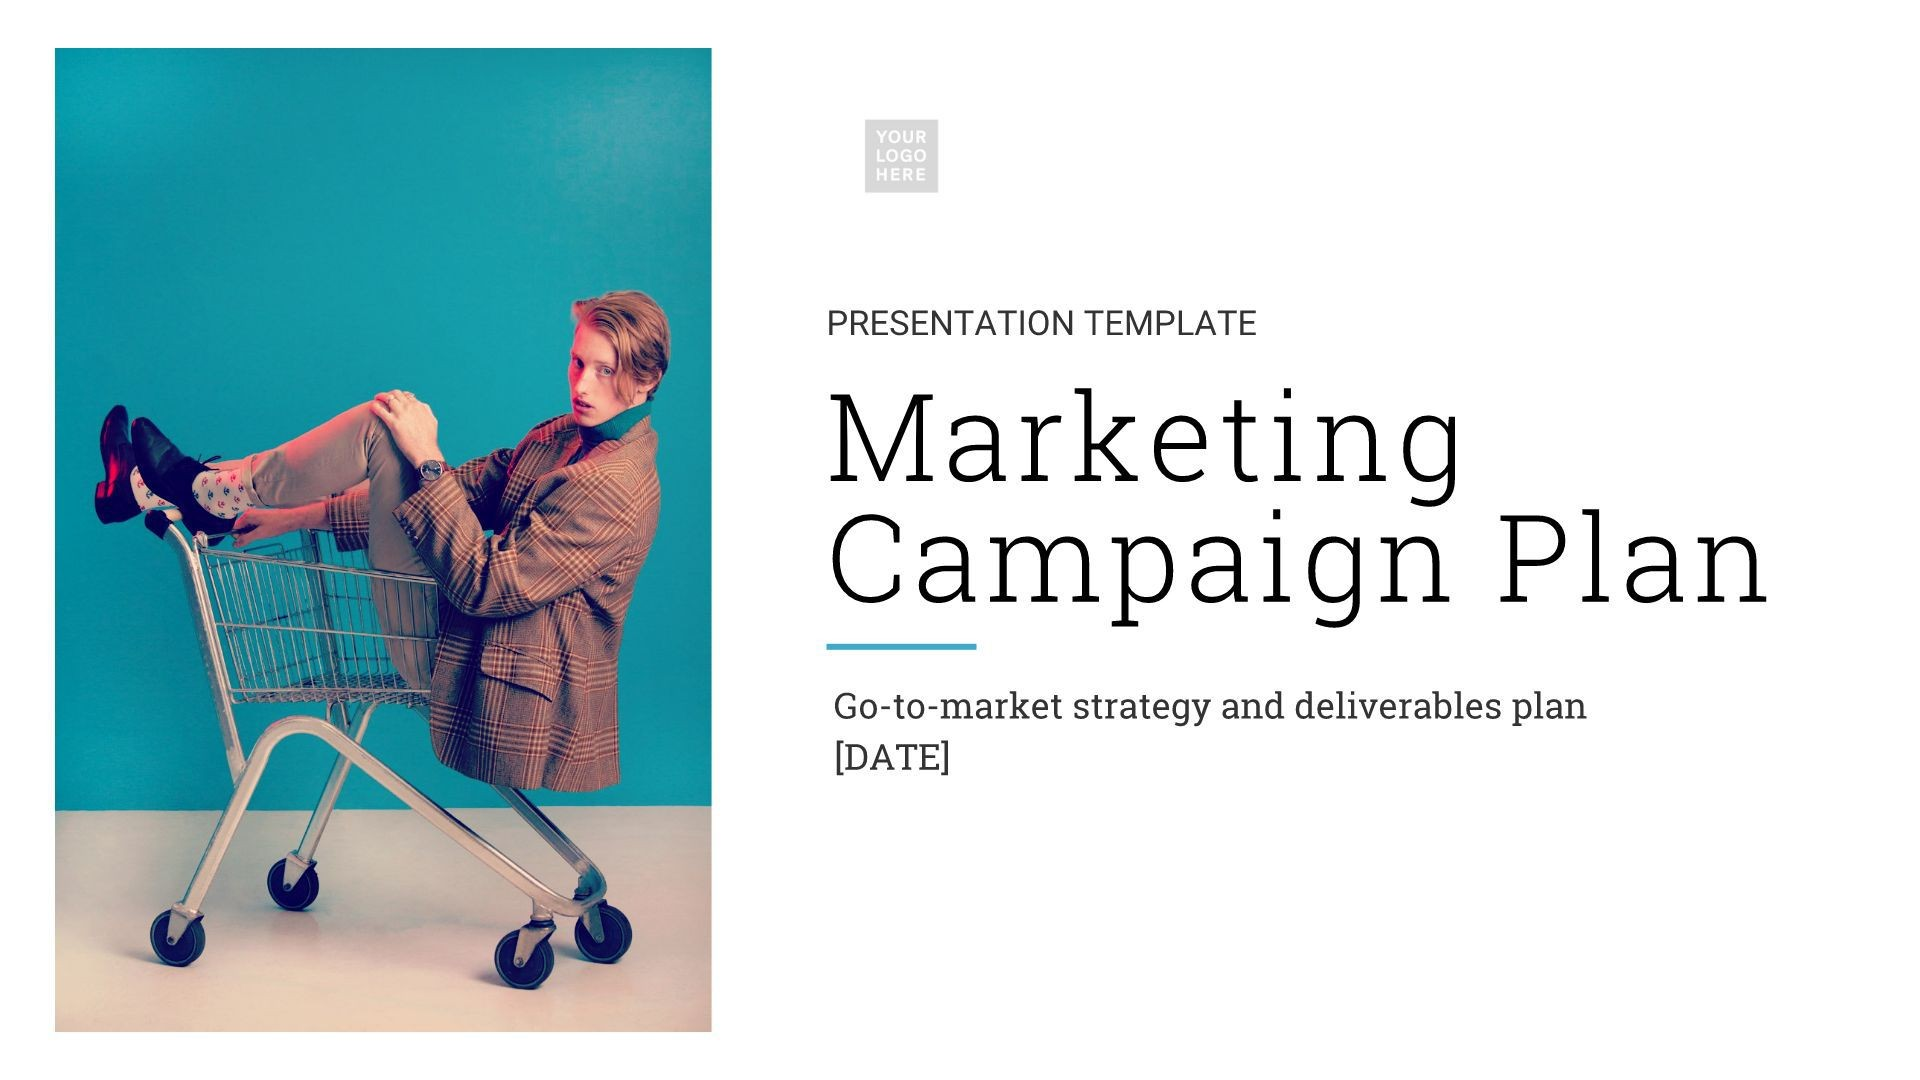 003 Fantastic Marketing Campaign Plan Format Photo  Template Pdf Direct Mail Email1920